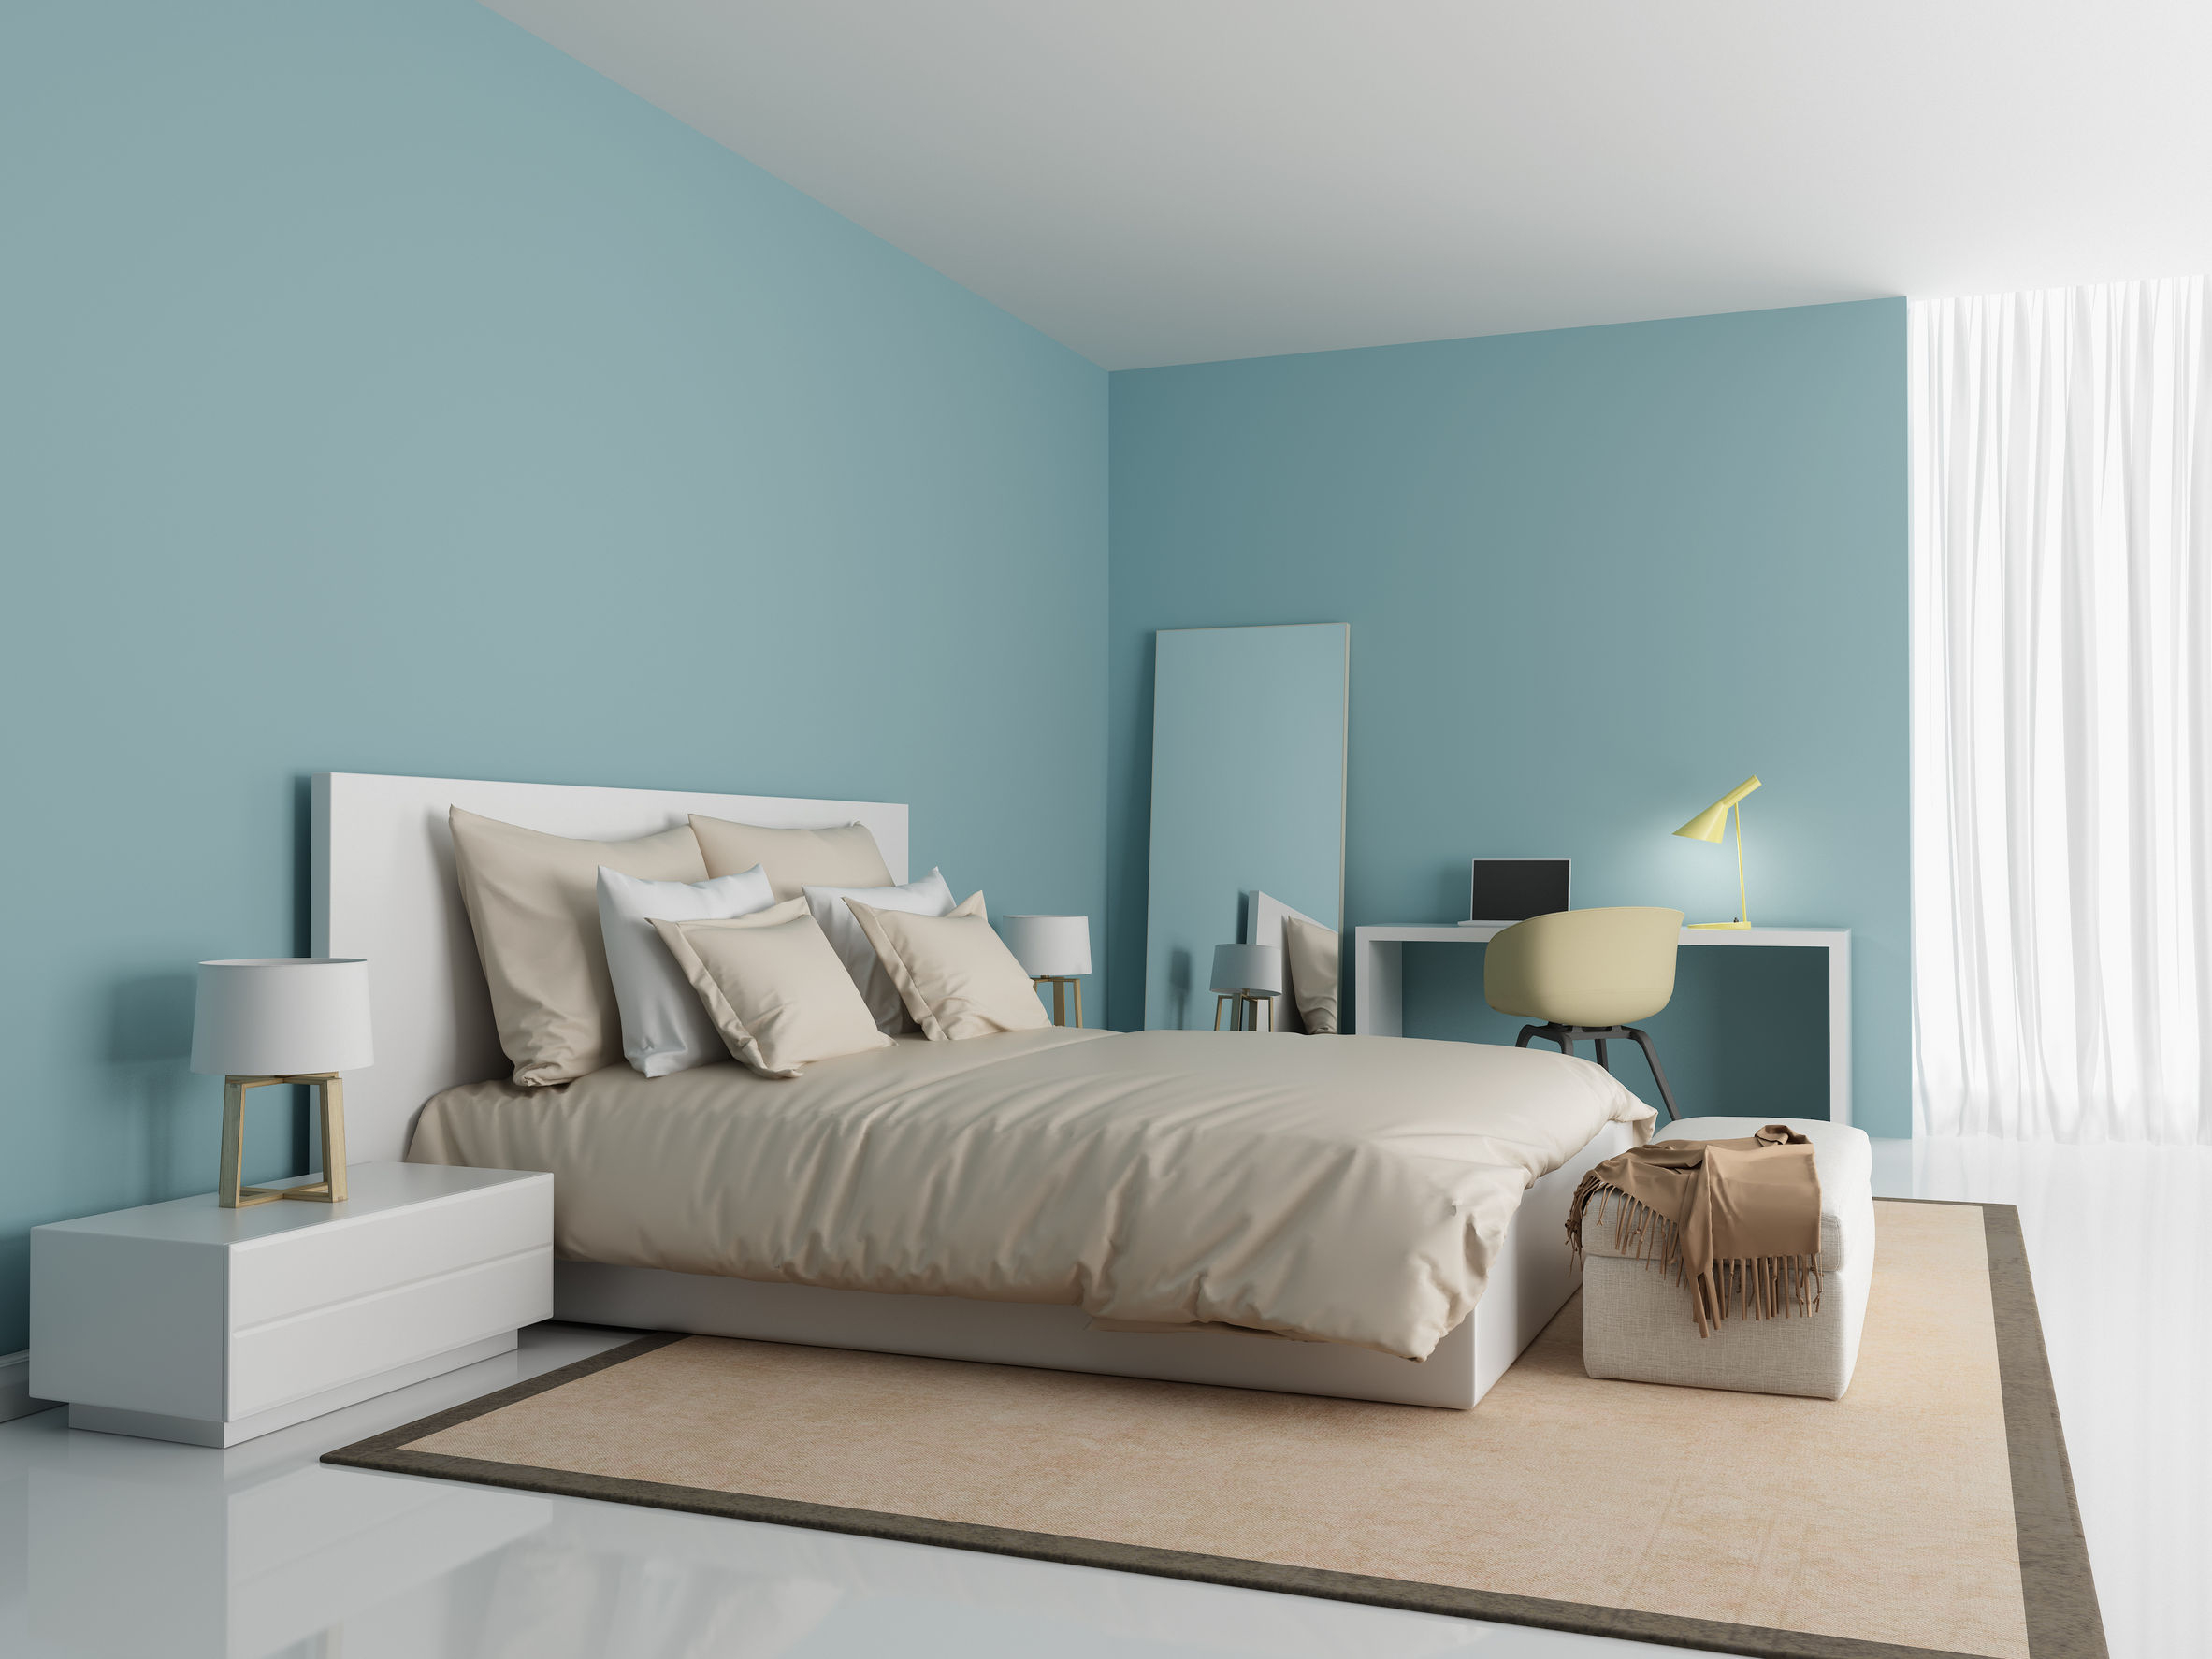 Recolor To Relax Here Are 5 Soothing Colors You Can Apply within measurements 2365 X 1774